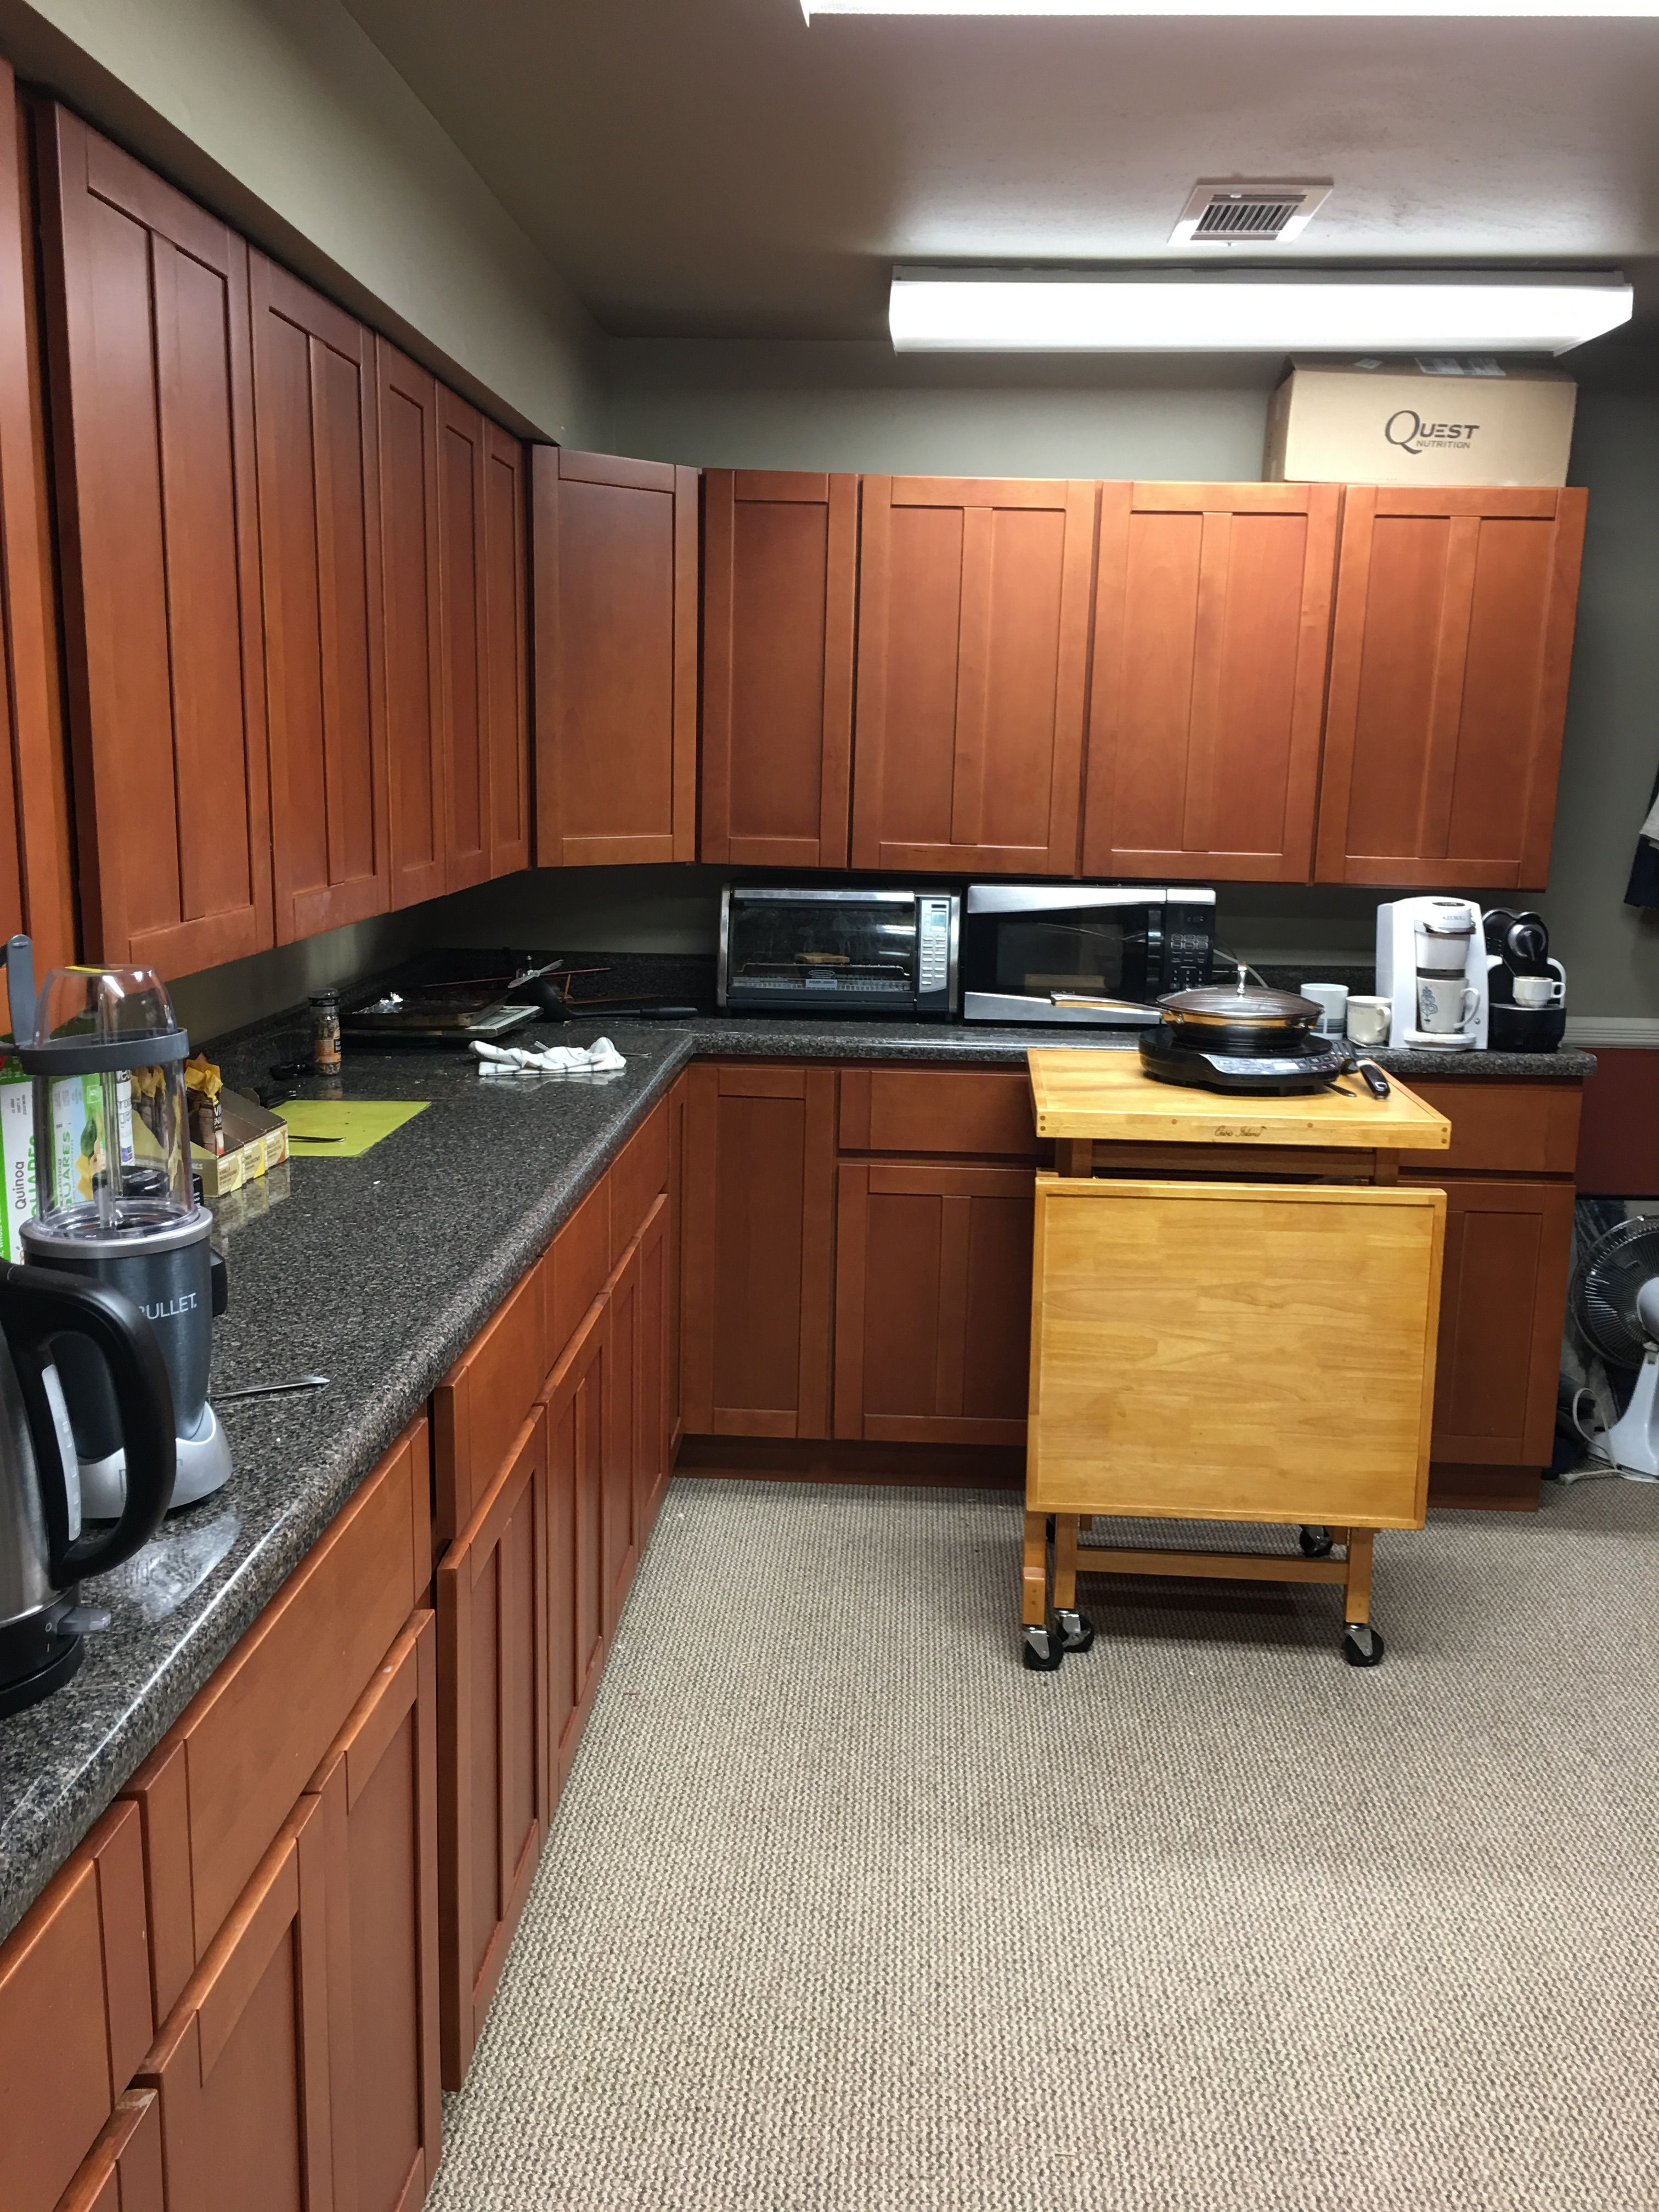 Commercial space great for a Doctors Office ,Physical Therapist, Lawyers office currently being used as an accountants office. Ample parking. Asking $325.000, Neuhaus Realty Inc, listing Office num…